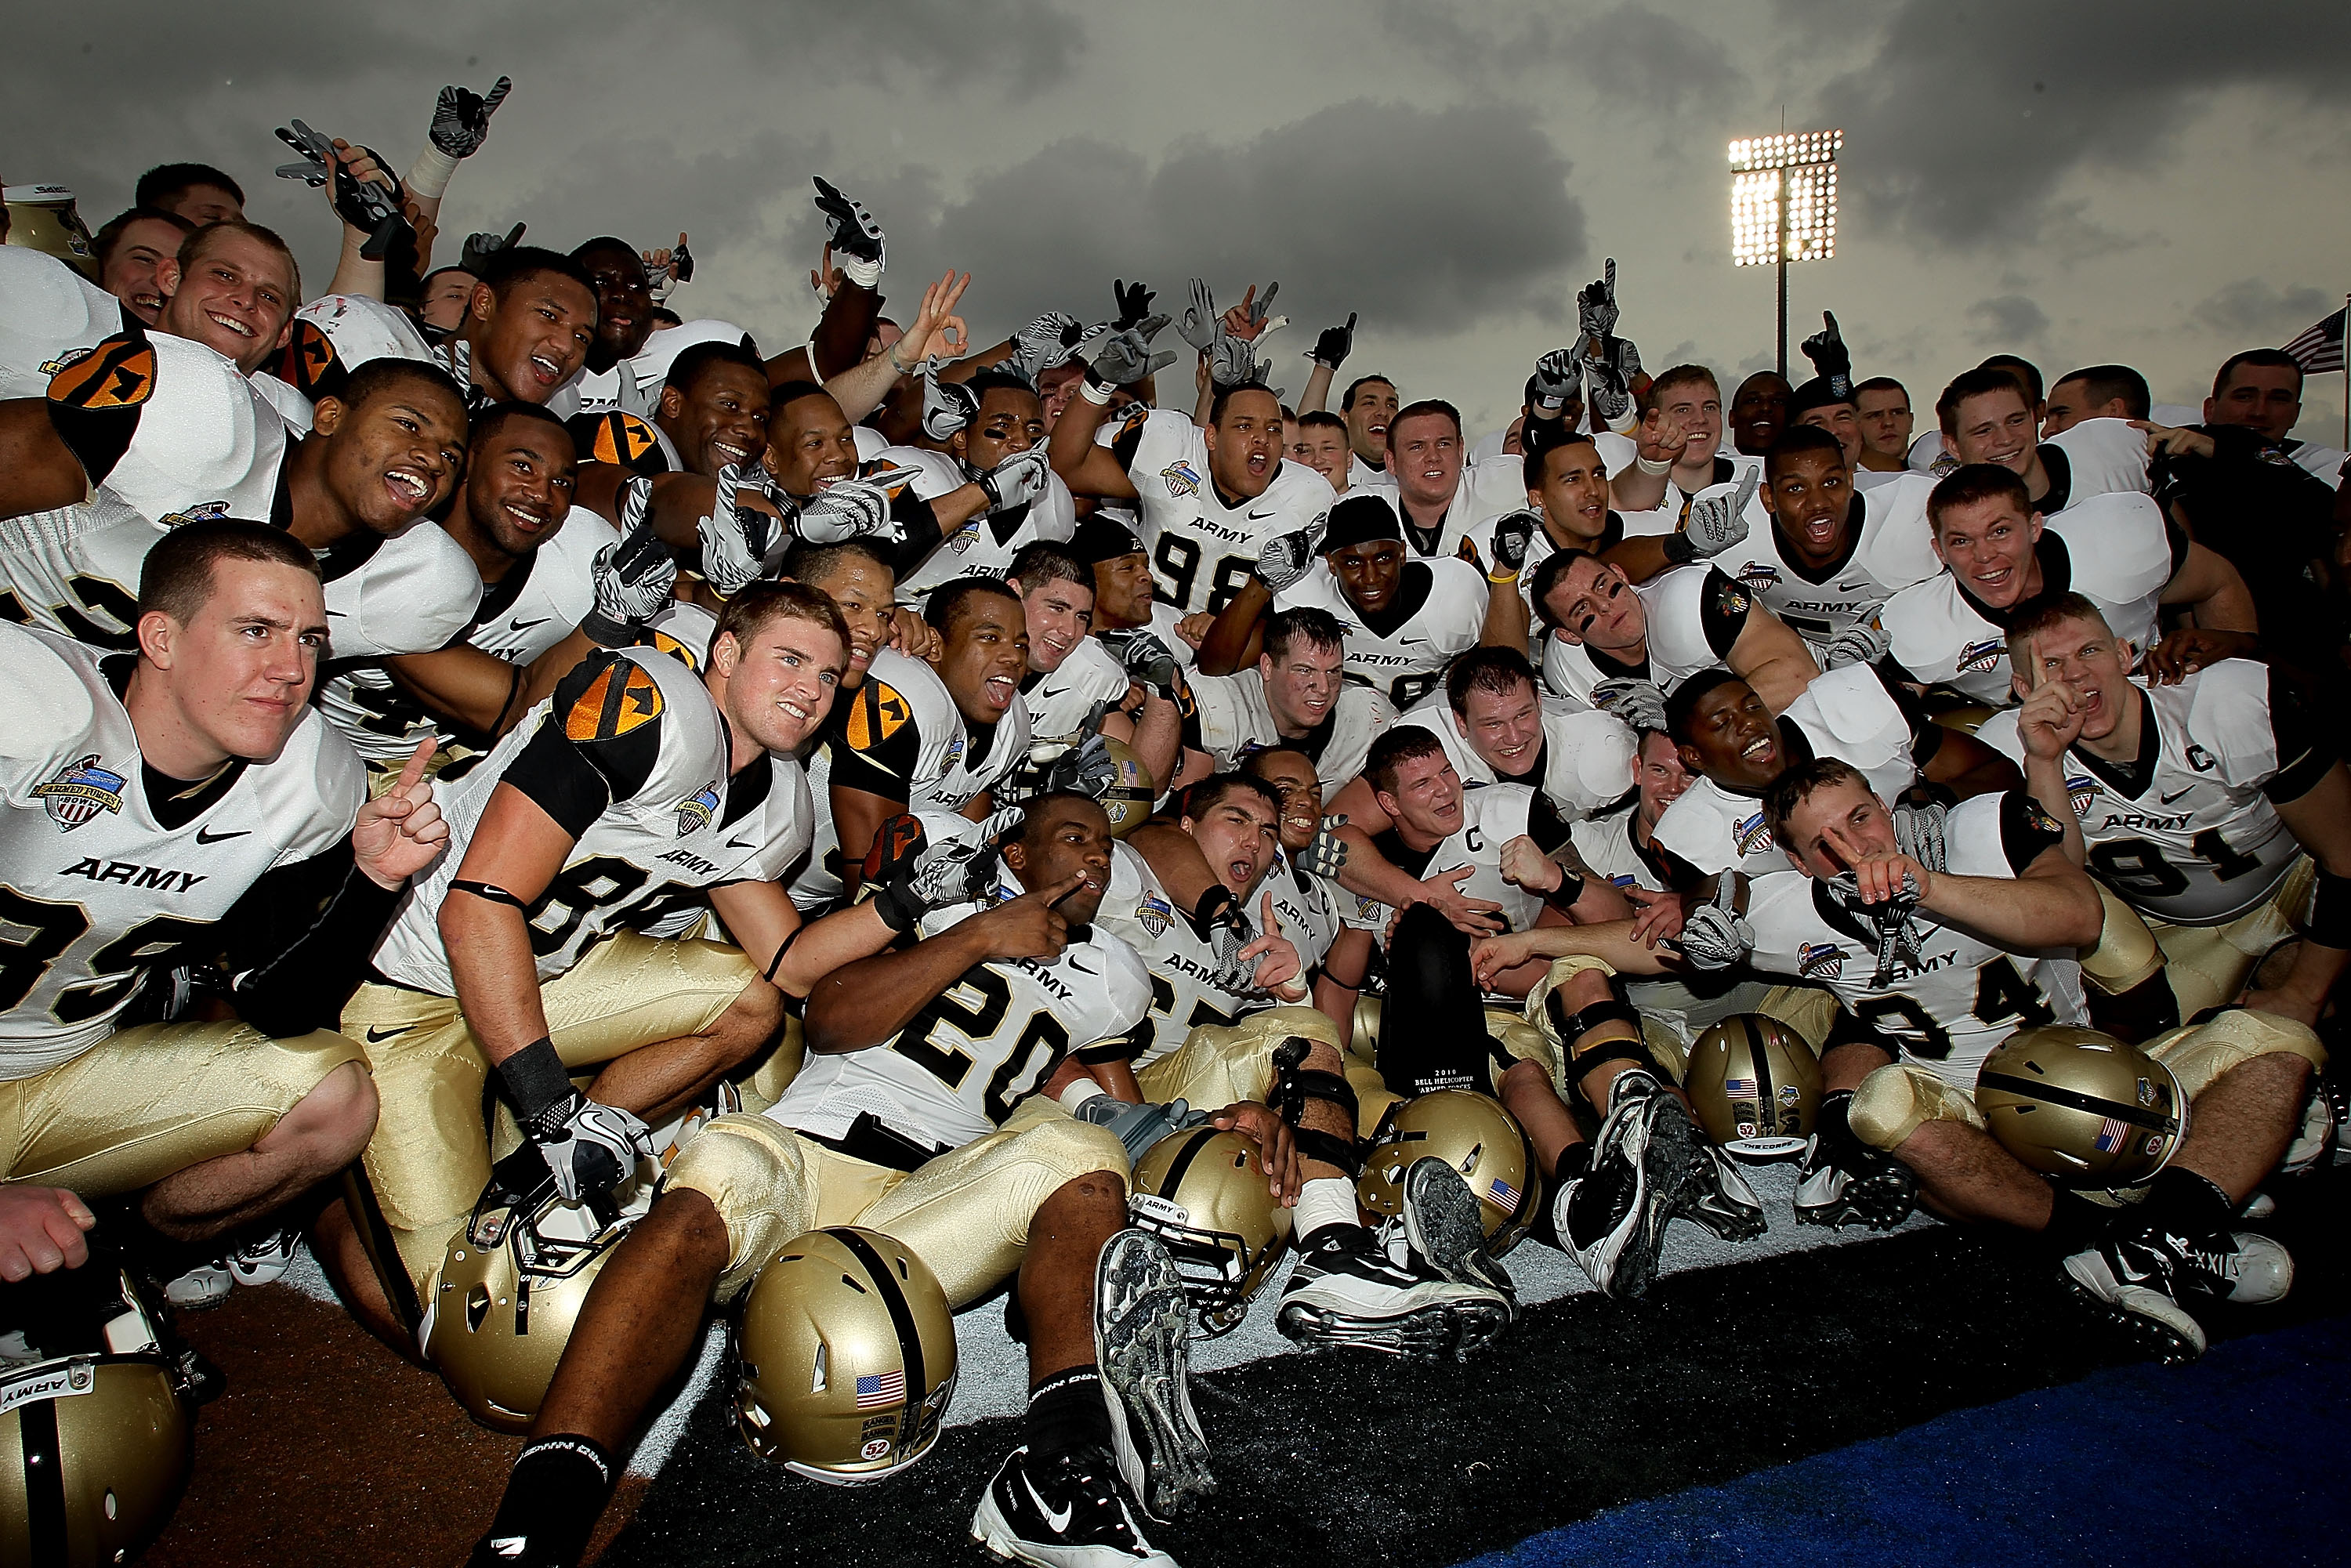 DALLAS, TX - DECEMBER 30:  The Army Black Knights celebrate a 16-14 win against the SMU Mustangs during the Bell Helicopter Armed Forces Bowl at Gerald J. Ford Stadium on December 30, 2010 in Dallas, Texas.  (Photo by Ronald Martinez/Getty Images)